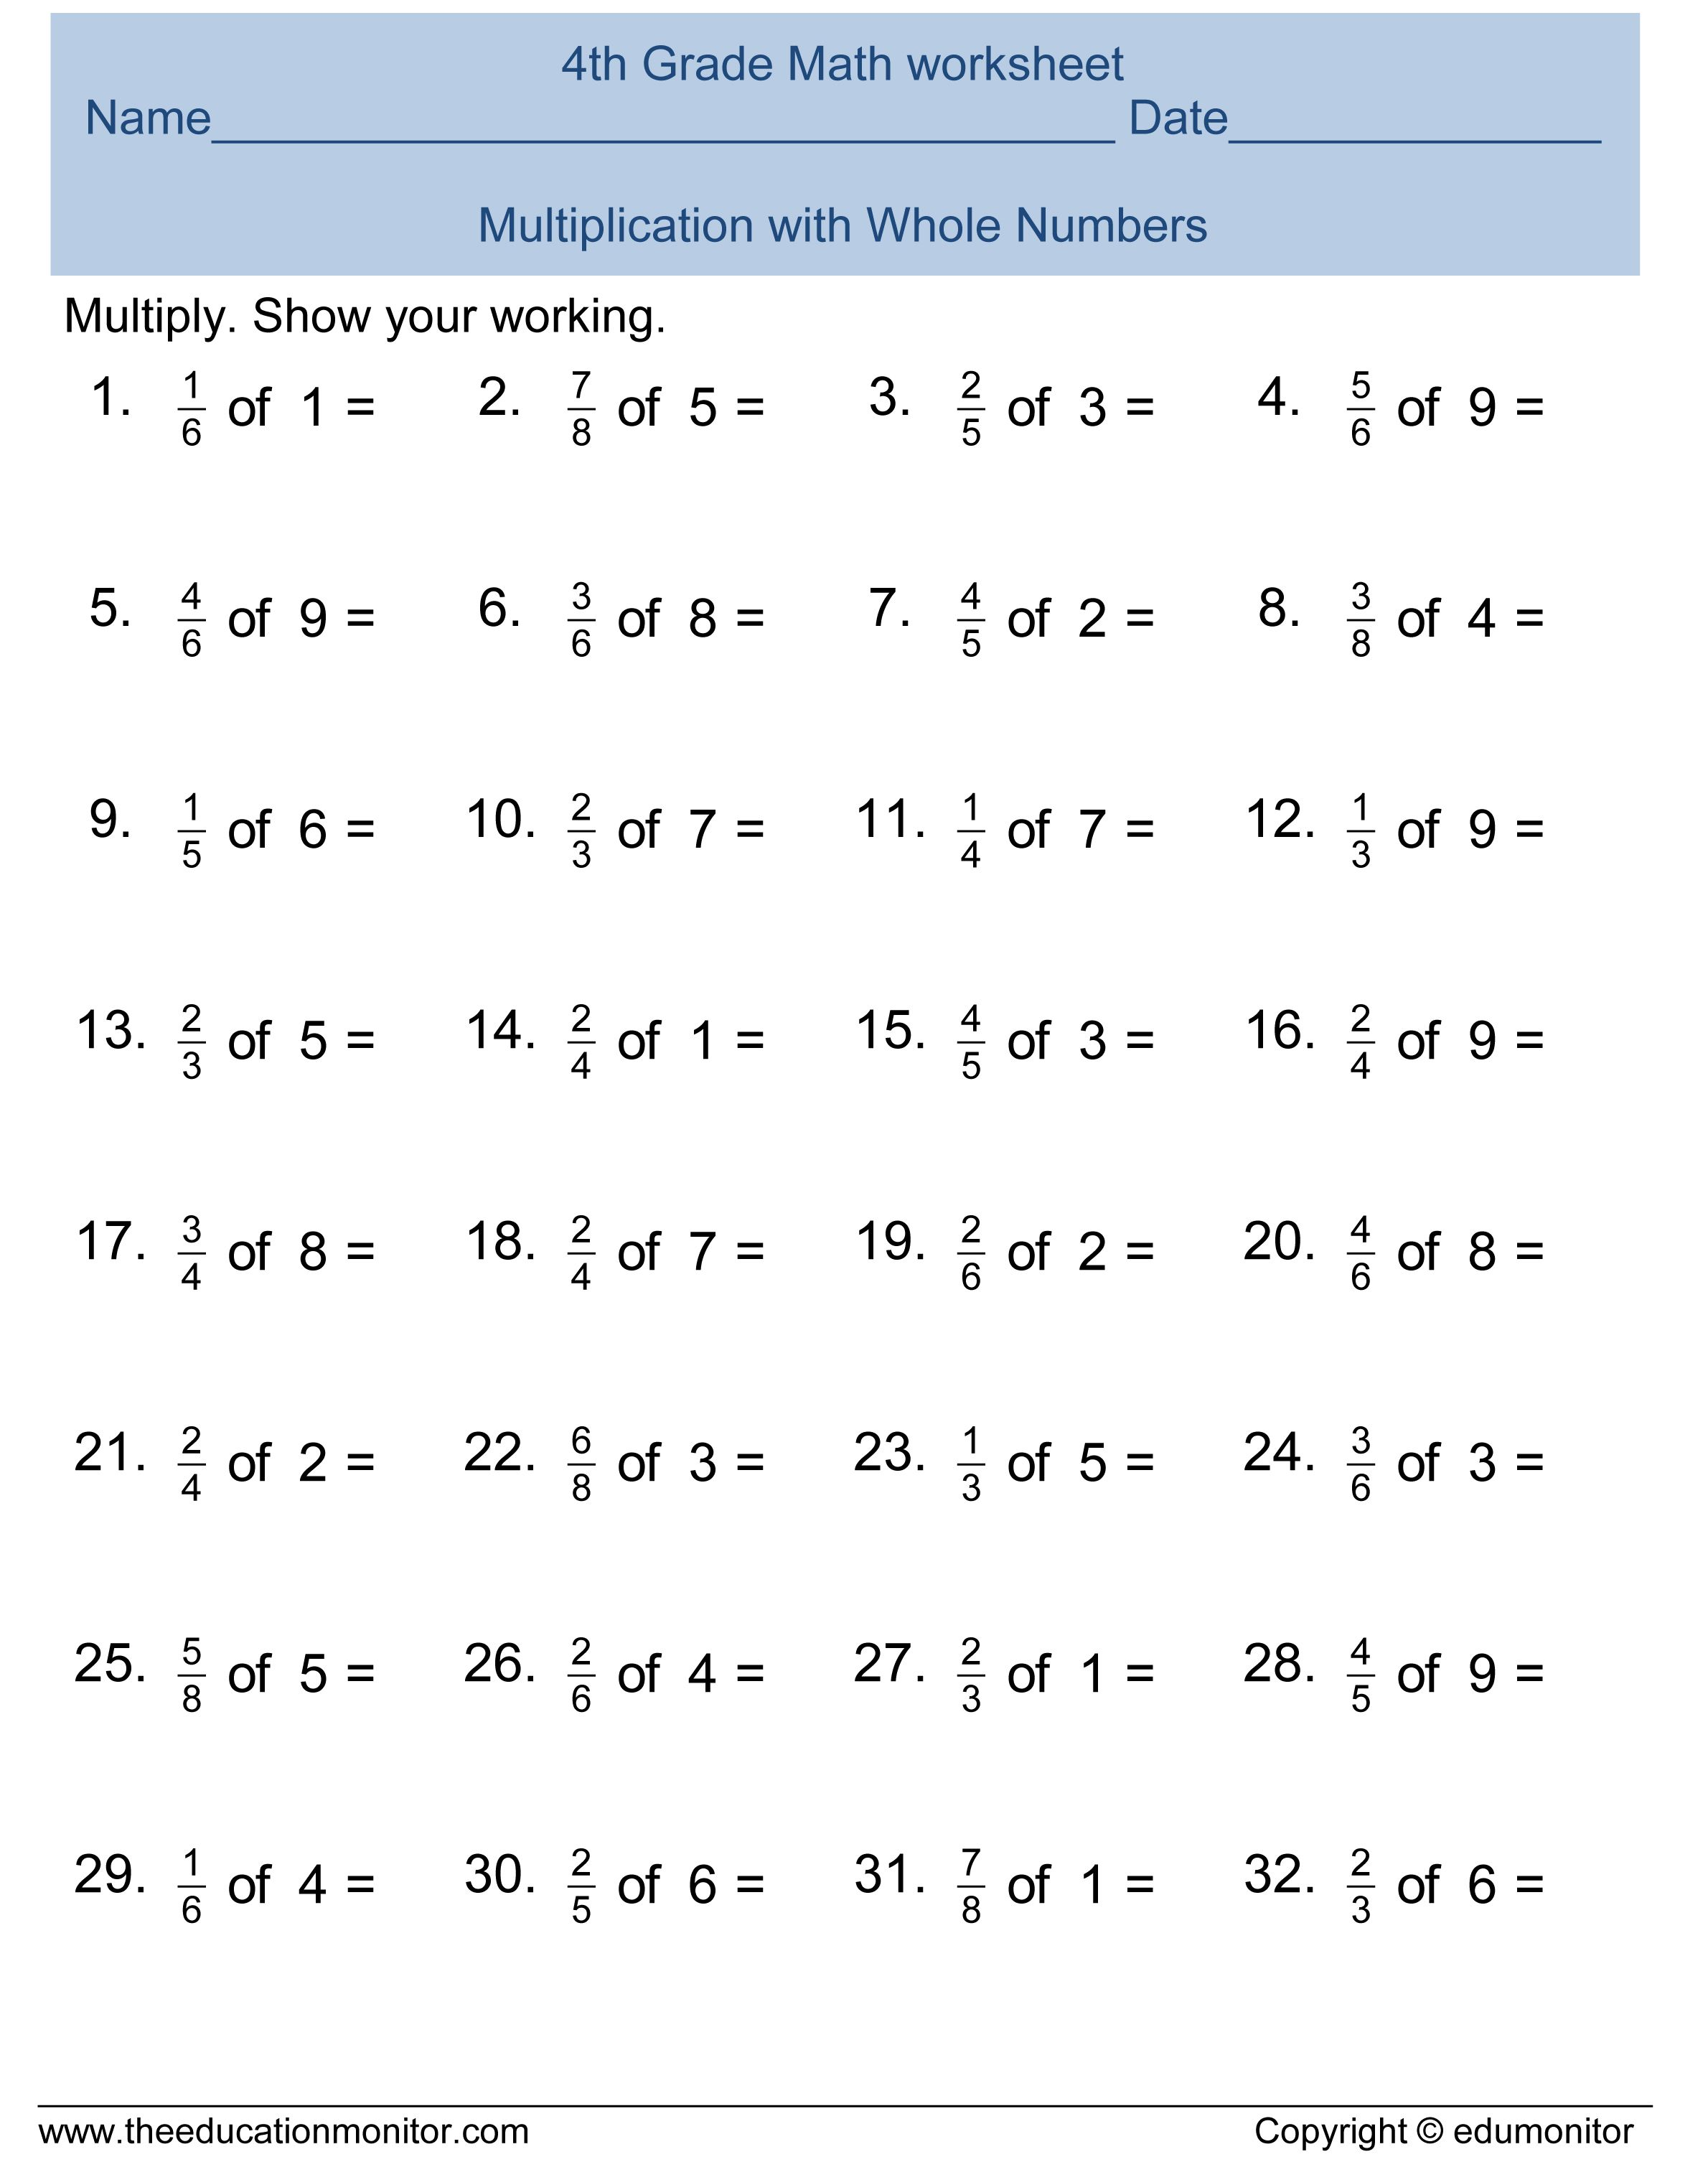 https://dubaikhalifas.com/multiplying-fractions-worksheet-grade-4-awesome-worksheet/ [ 91 x 3012 Pixel ]